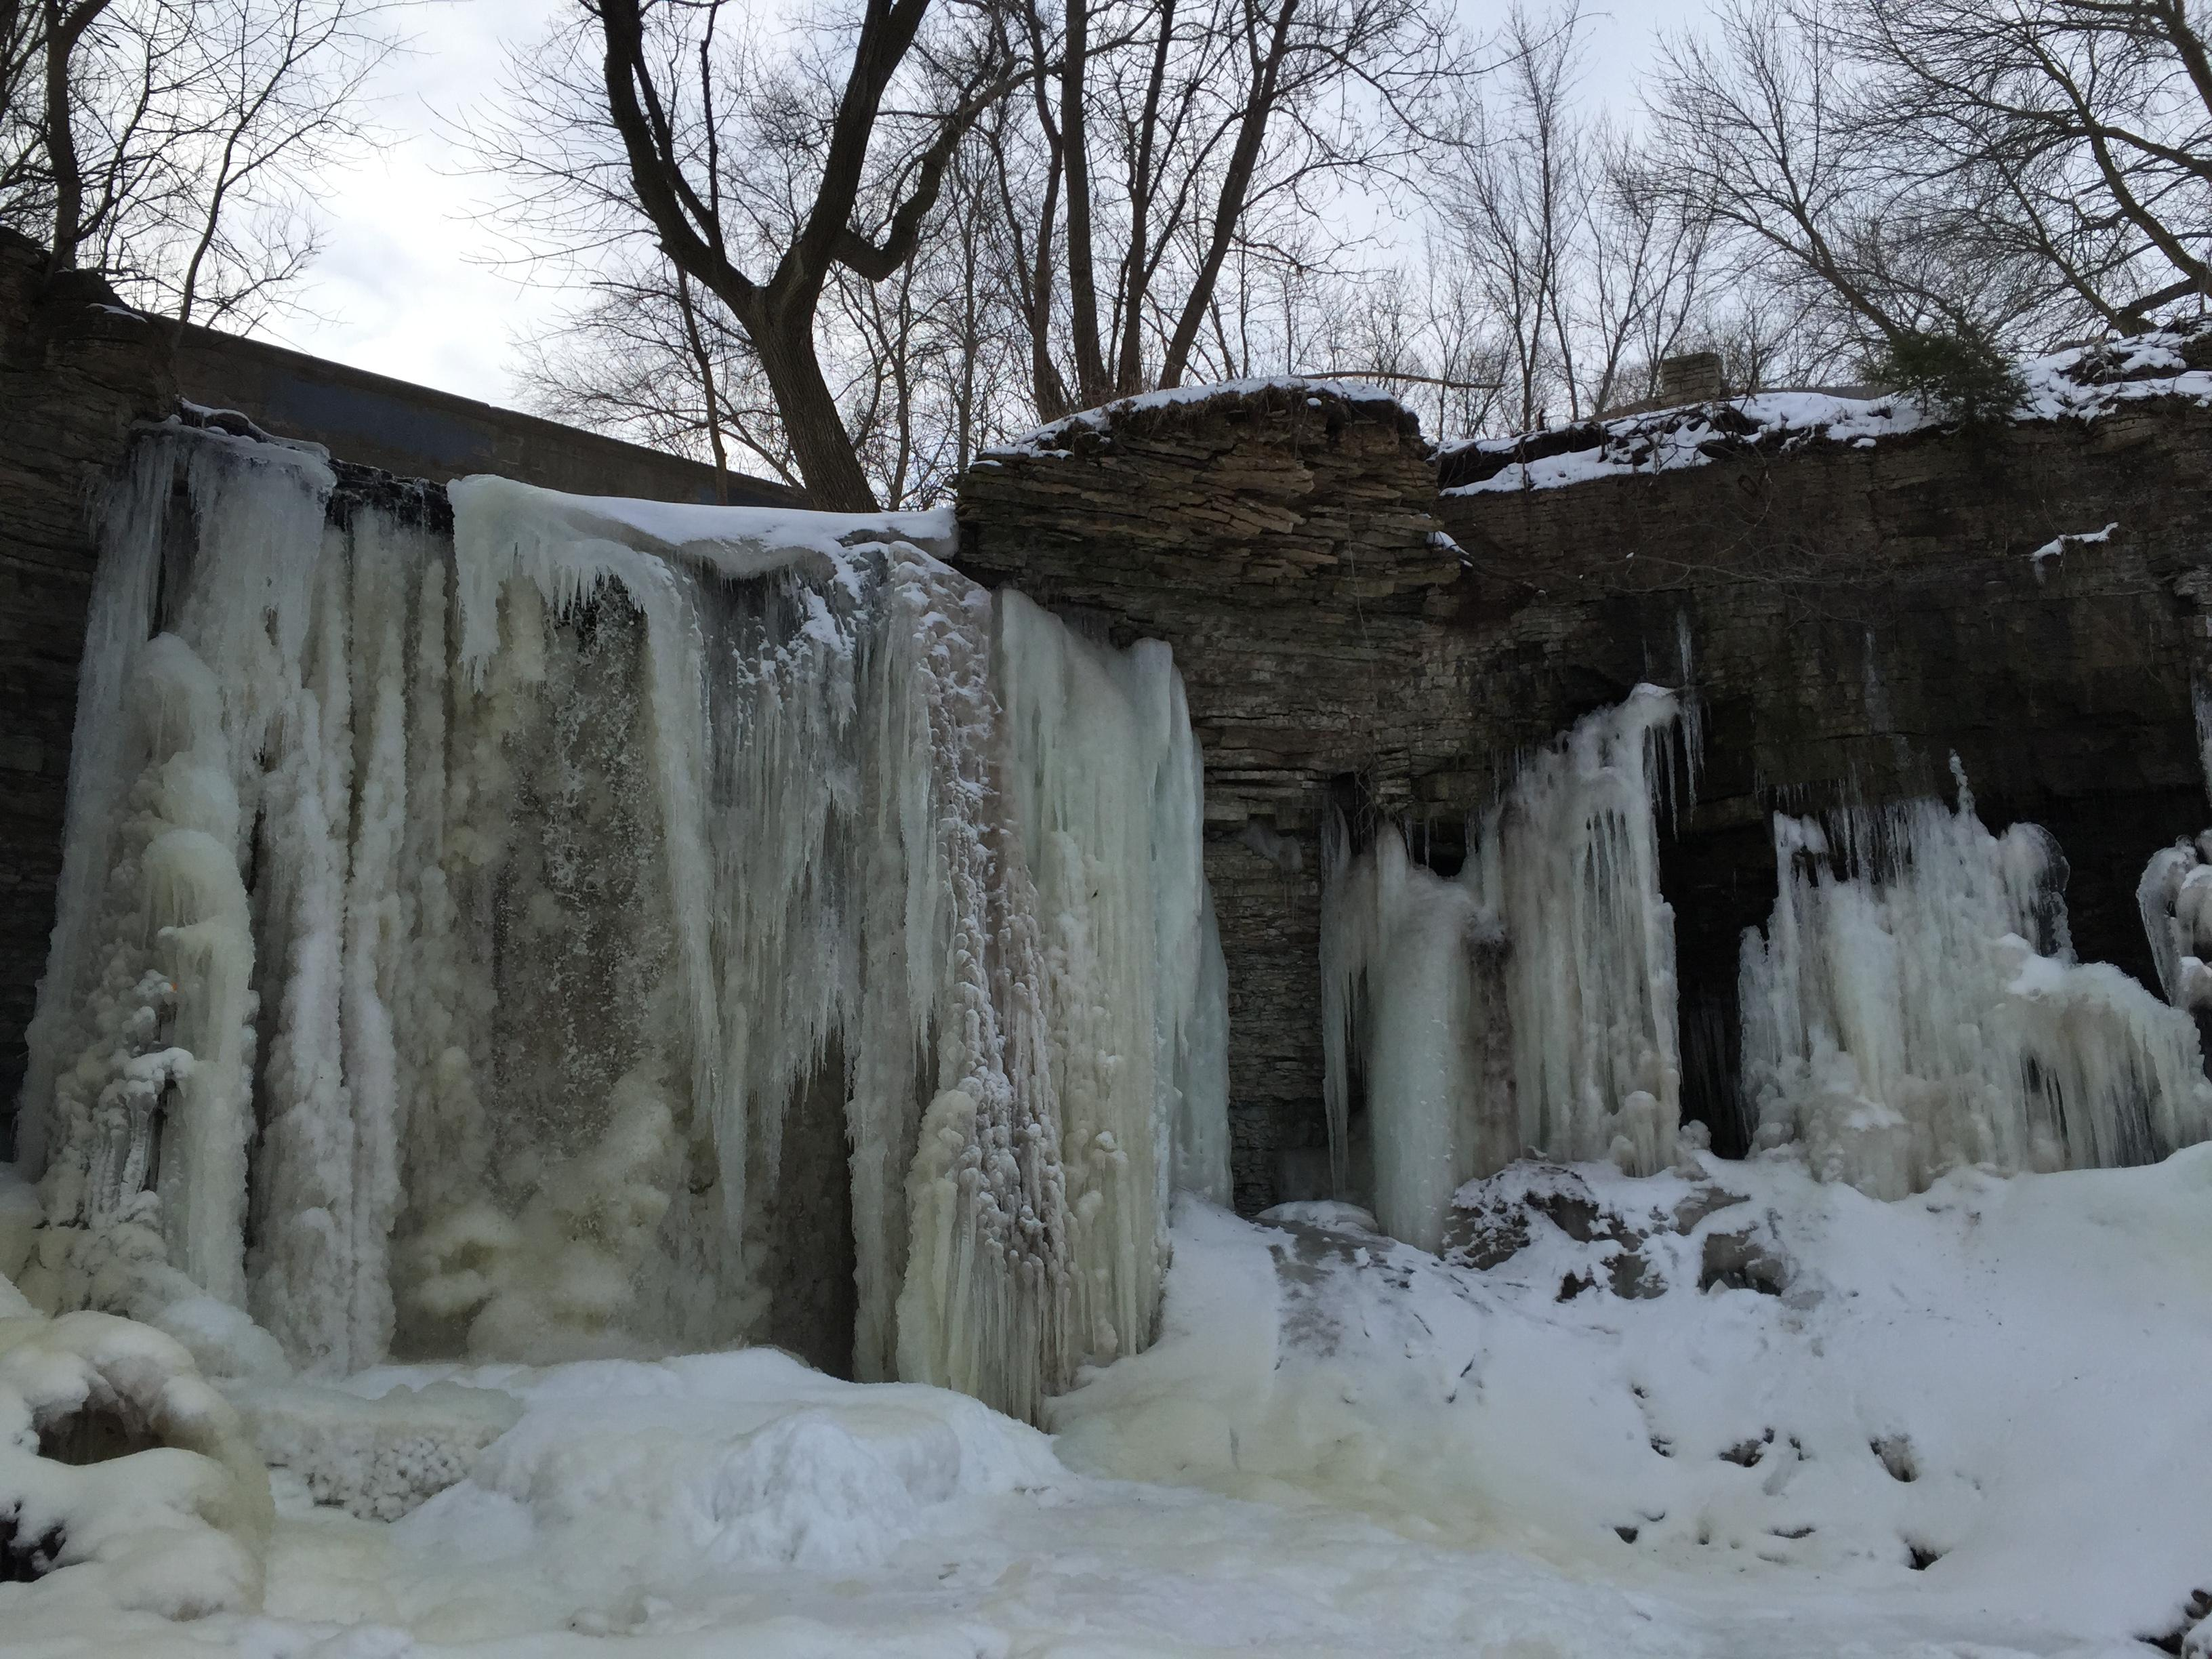 Frozen waterfalls make for a beautiful winter scene at Wequiock Falls County Park in the Town of Scott March 9, 2018. (WLUK/Katy Kramer)